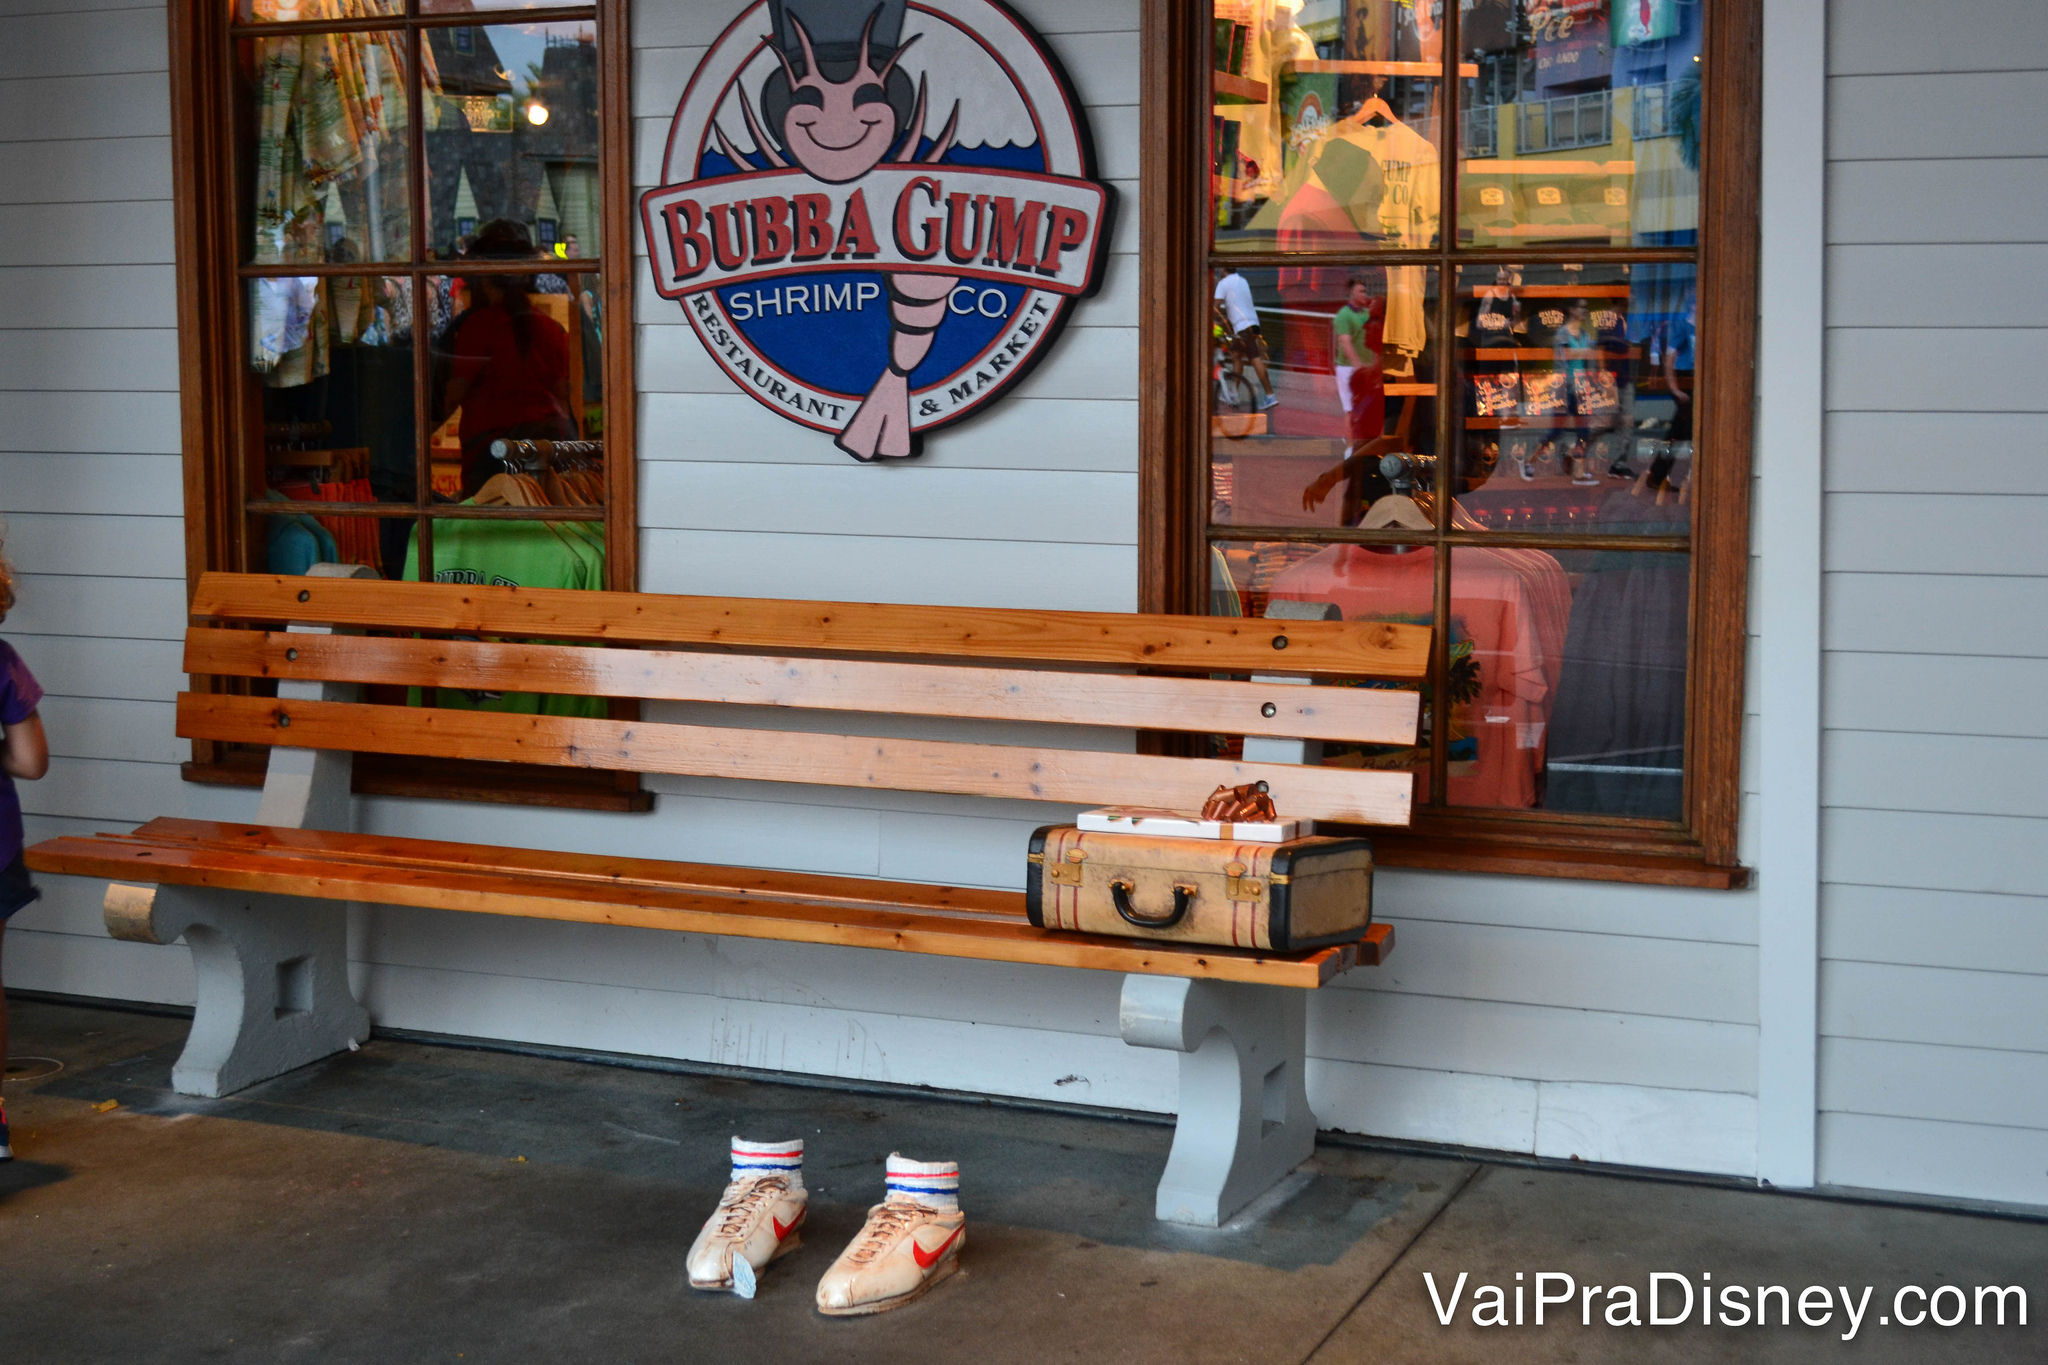 Foto do banco no exterior do Bubba Gump, com os tênis e a maleta de Forrest do filme Forrest Gump